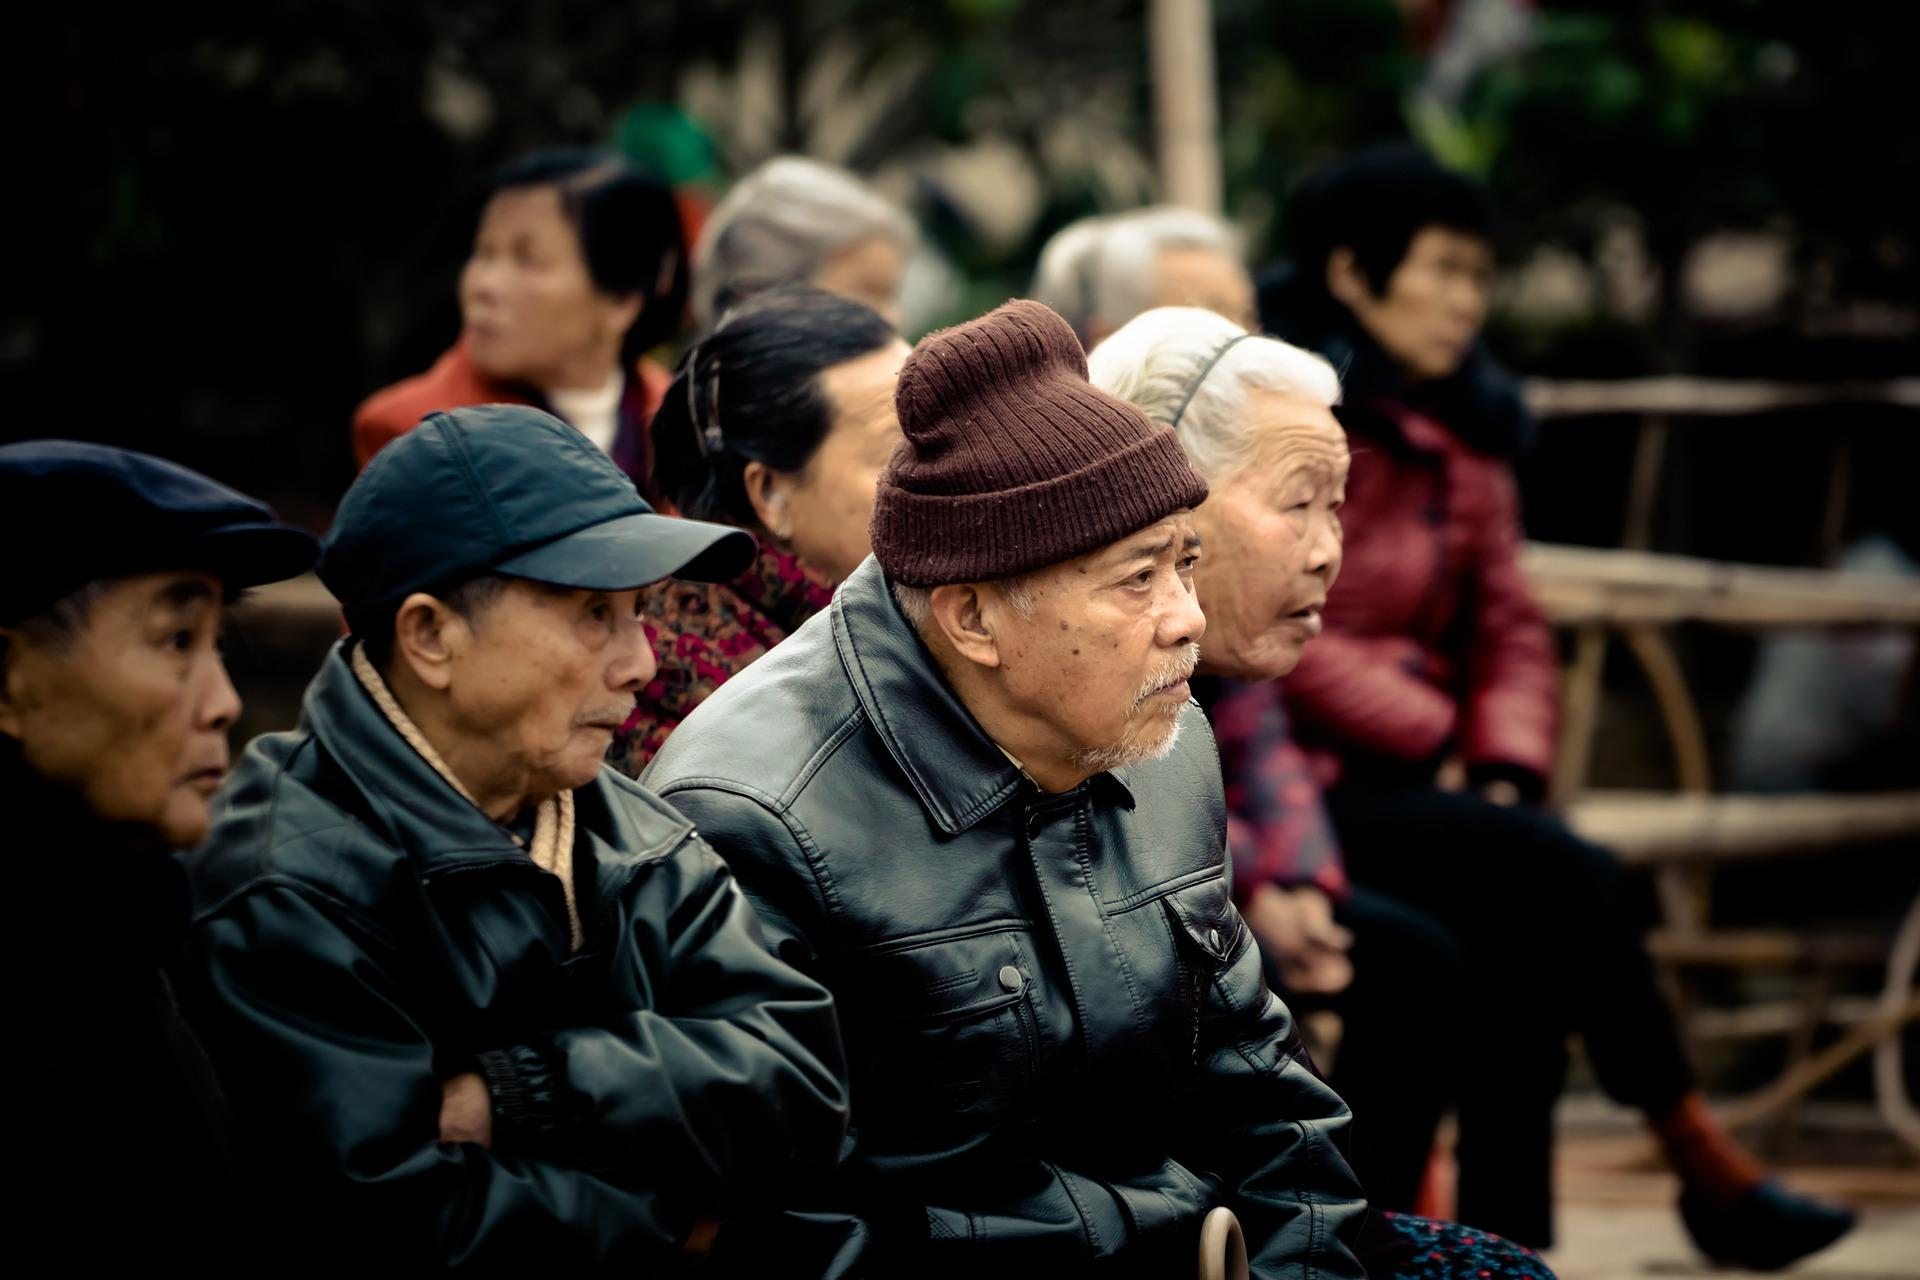 Elderly people in China